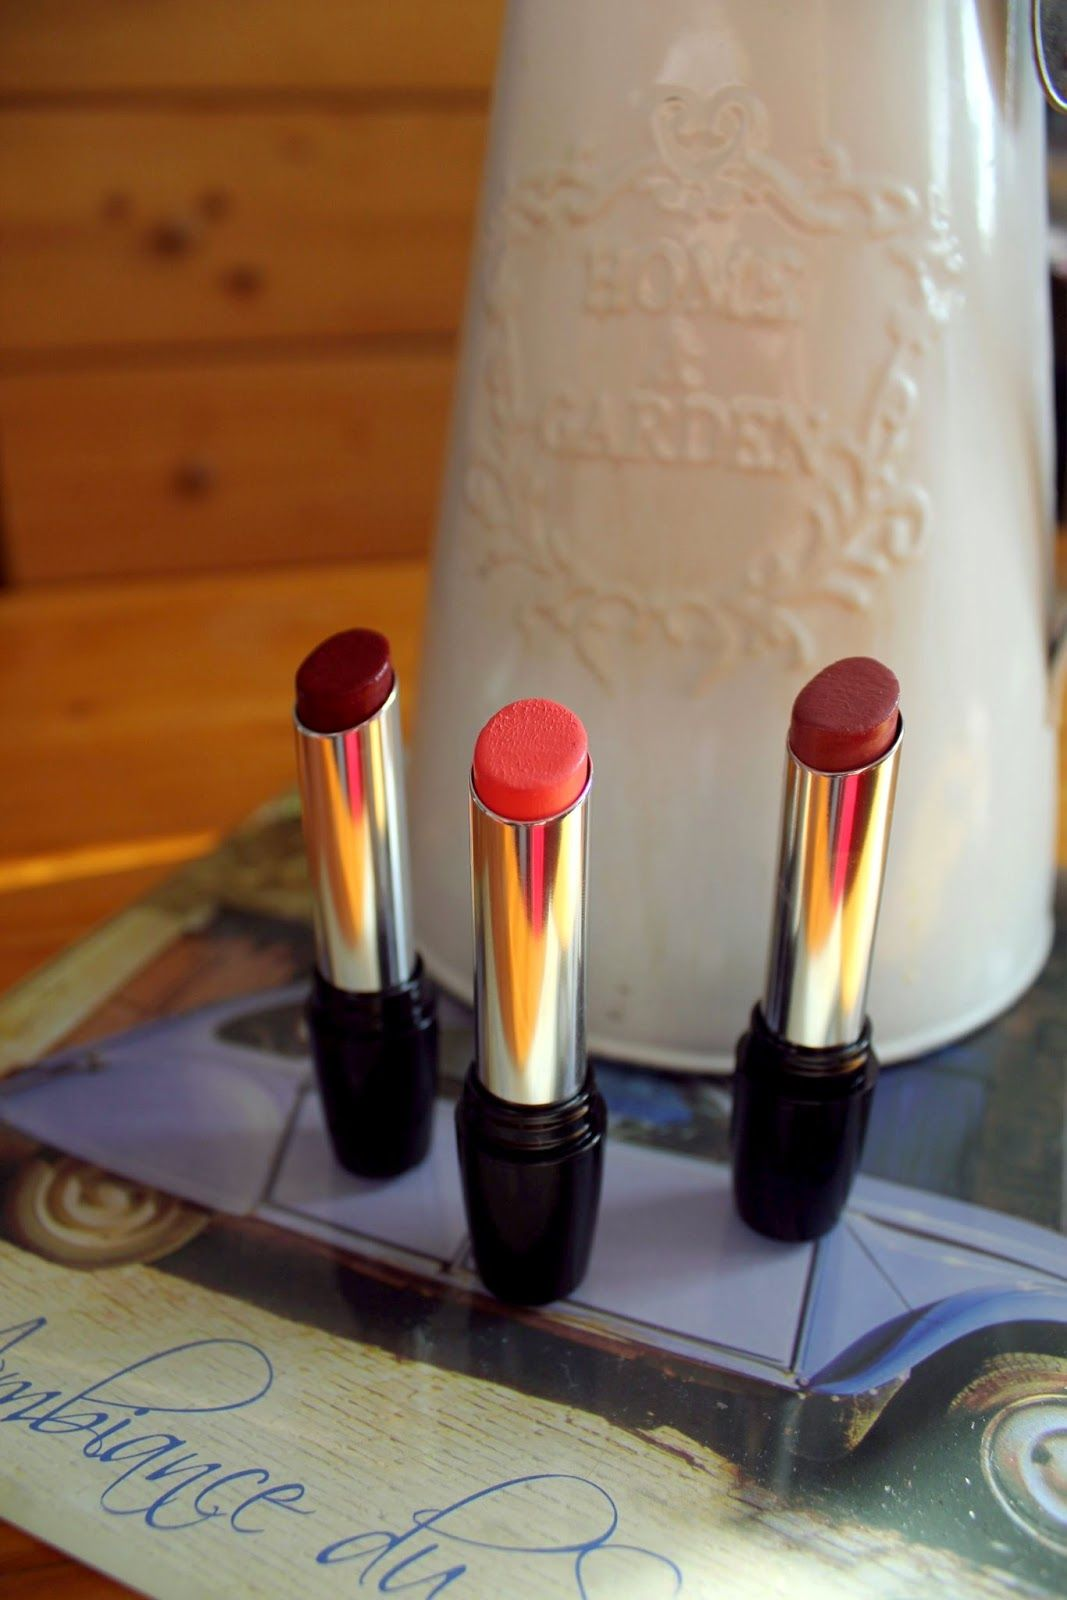 PIECES OF ME: Avon Ultra Colour Indulgence